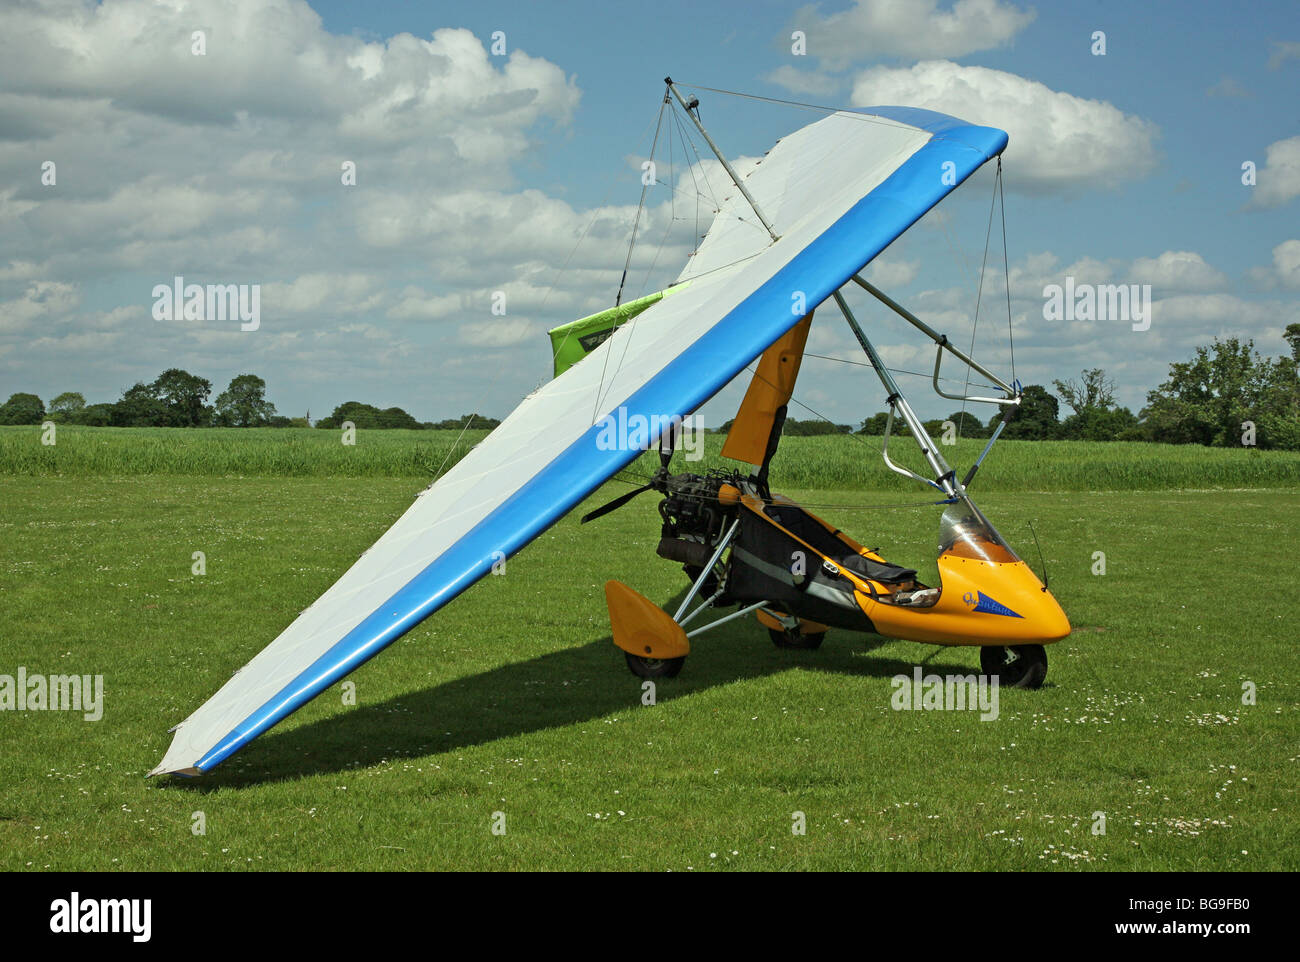 microlight aircraft waiting on the ground without any people - Stock Image